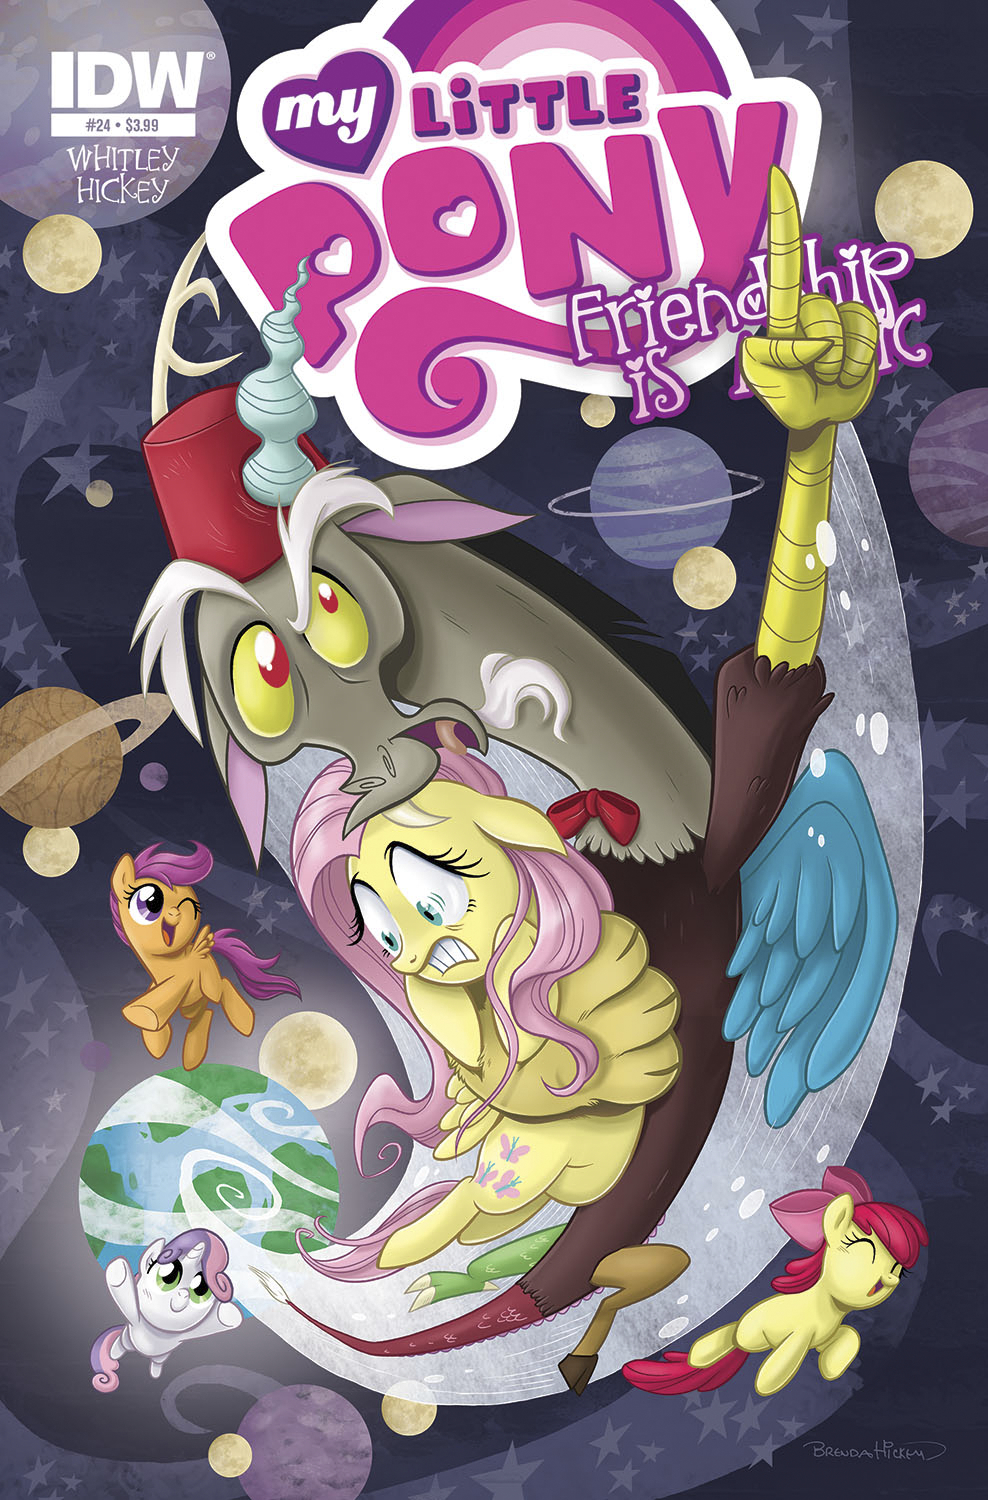 MY LITTLE PONY FRIENDSHIP IS MAGIC #24